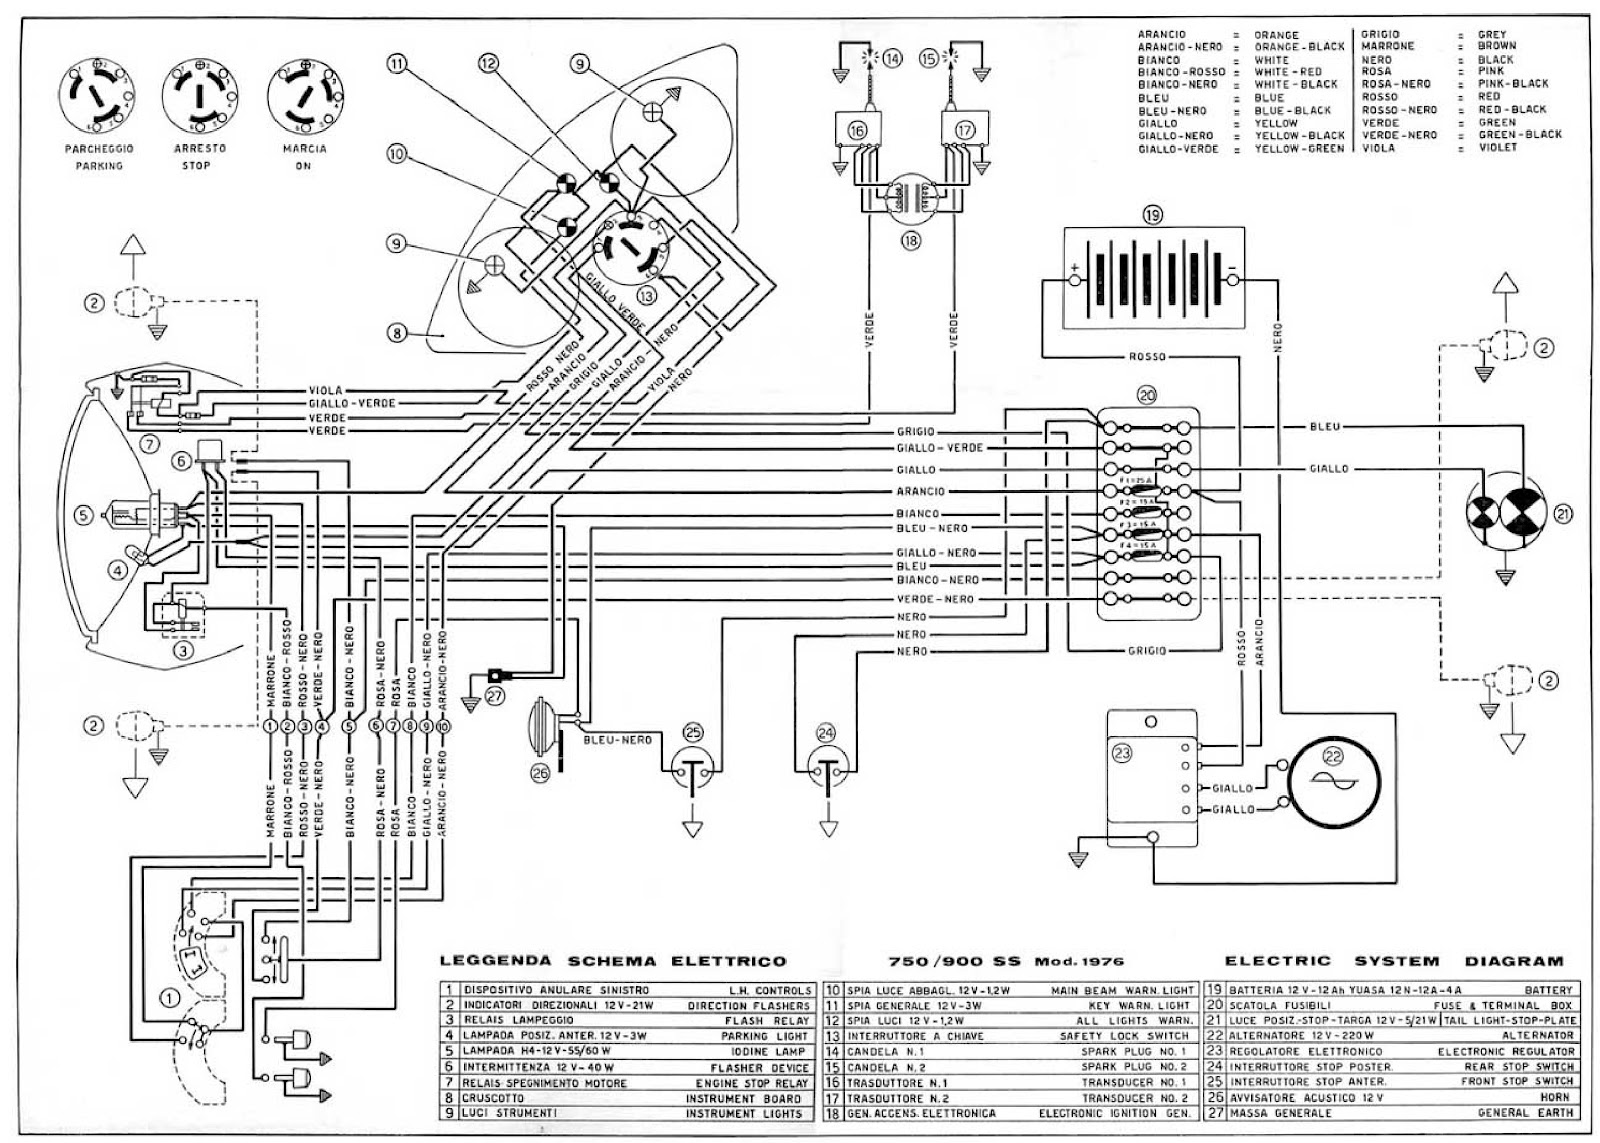 DUCATI SUPERSPORT 750SS 900SS 1976 Wiring Diagram